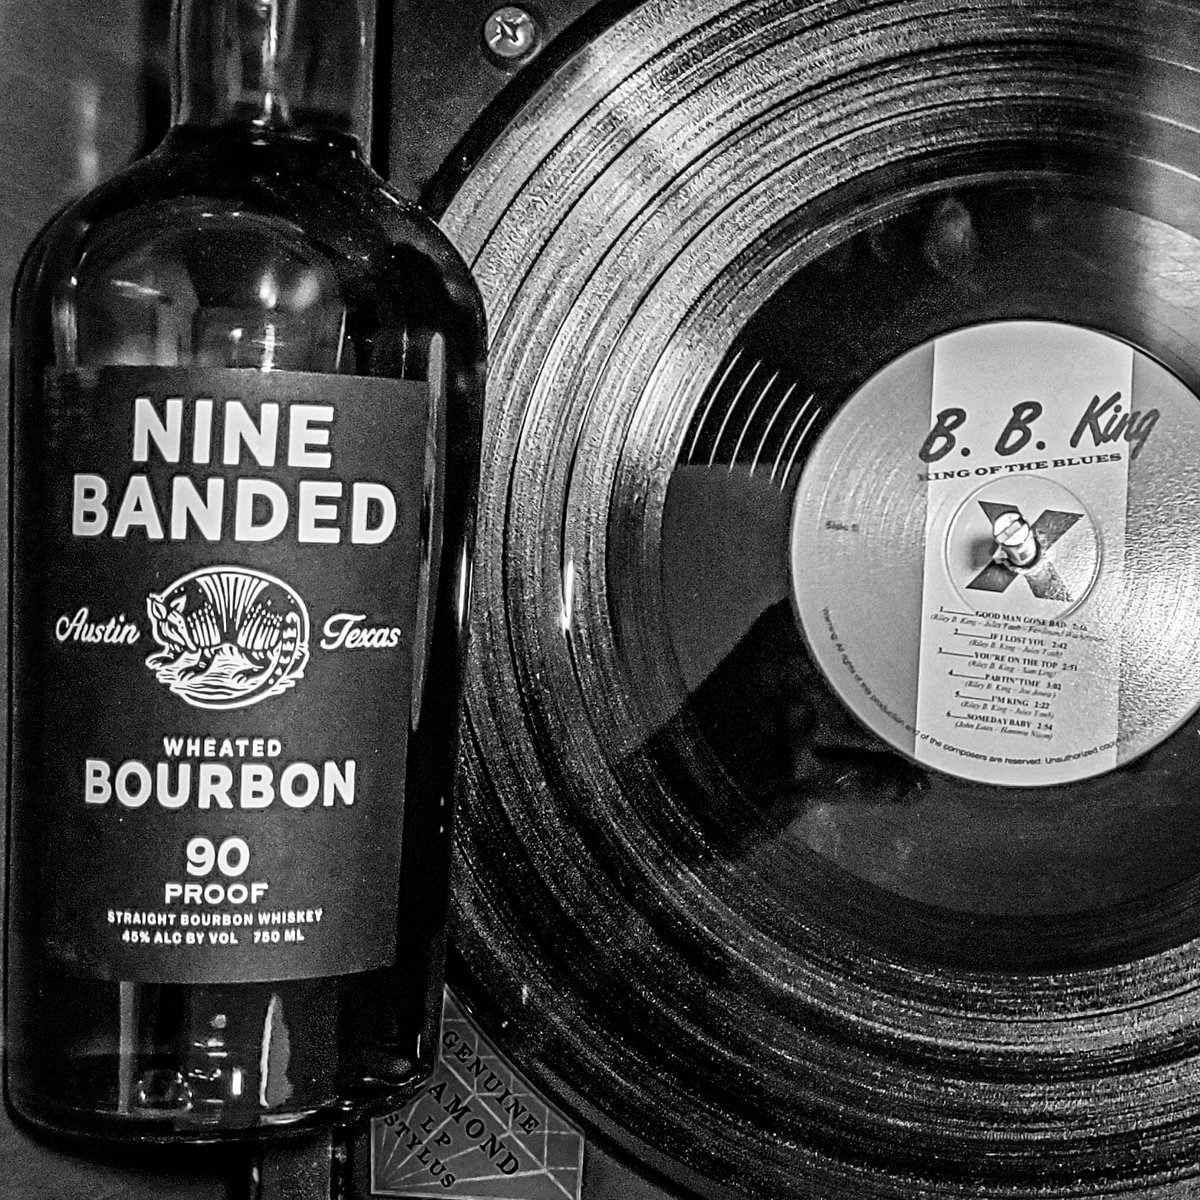 For us, #vinyl says kick back with a glass of #bourbon, or maybe it was the #blues cascading from the speakers. #drinkwhiskey  https://t.co/SHiqreZ1V7